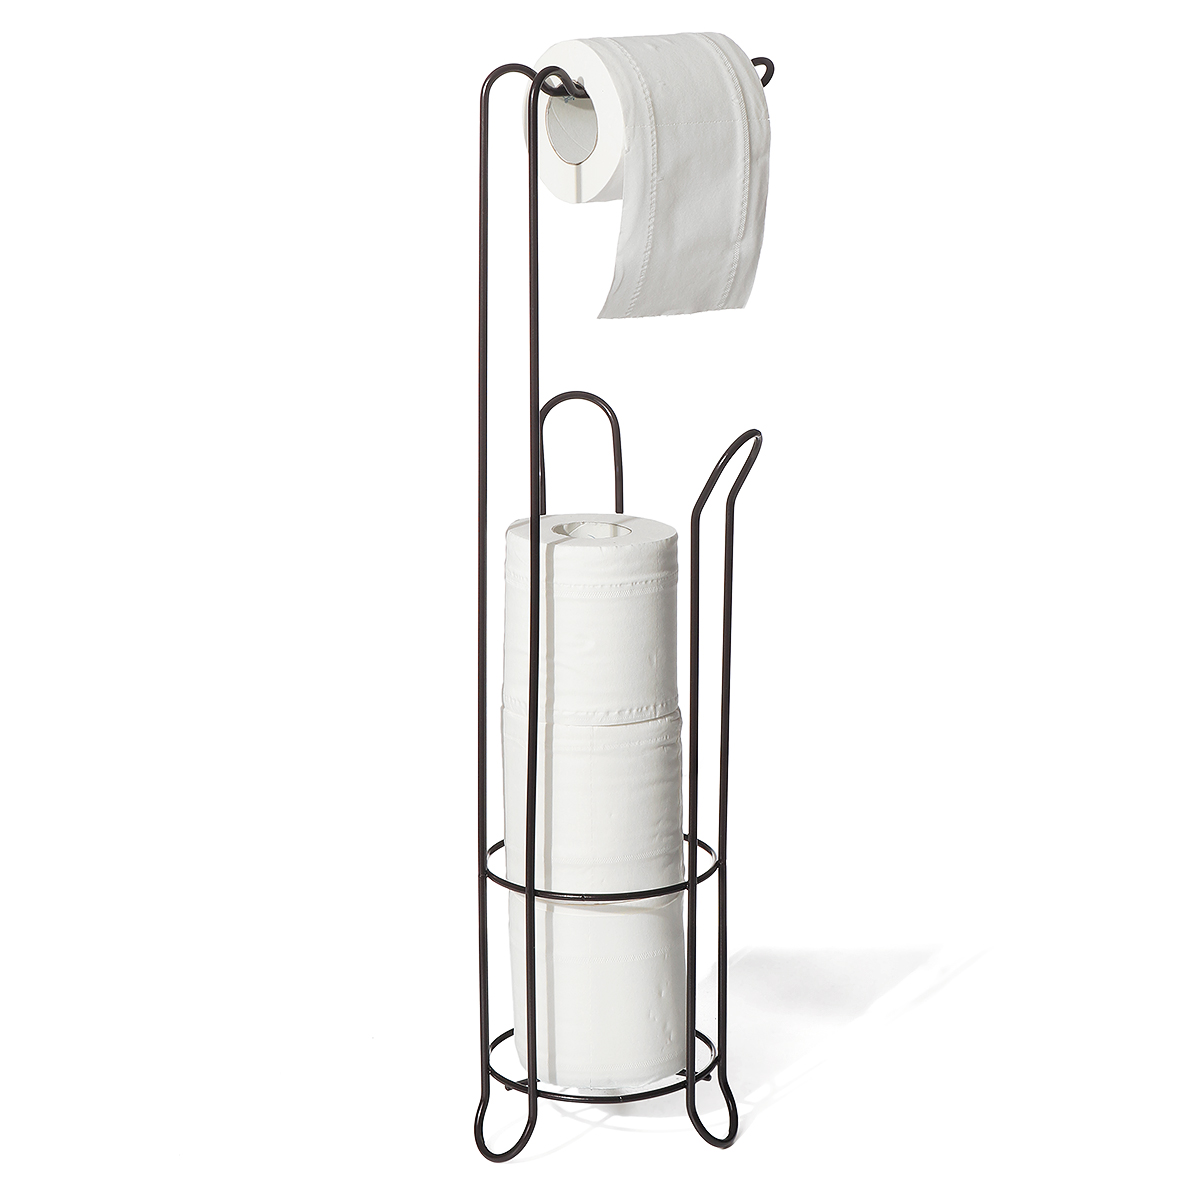 Toilet Paper Holder Stand With Reserve Toilet Paper Storage Toilet Paper Dispenser Free Standing Toilet Paper Holder Bathroom Toilet Roll Holder For Toilet Tissue Chrome Finish Walmart Canada